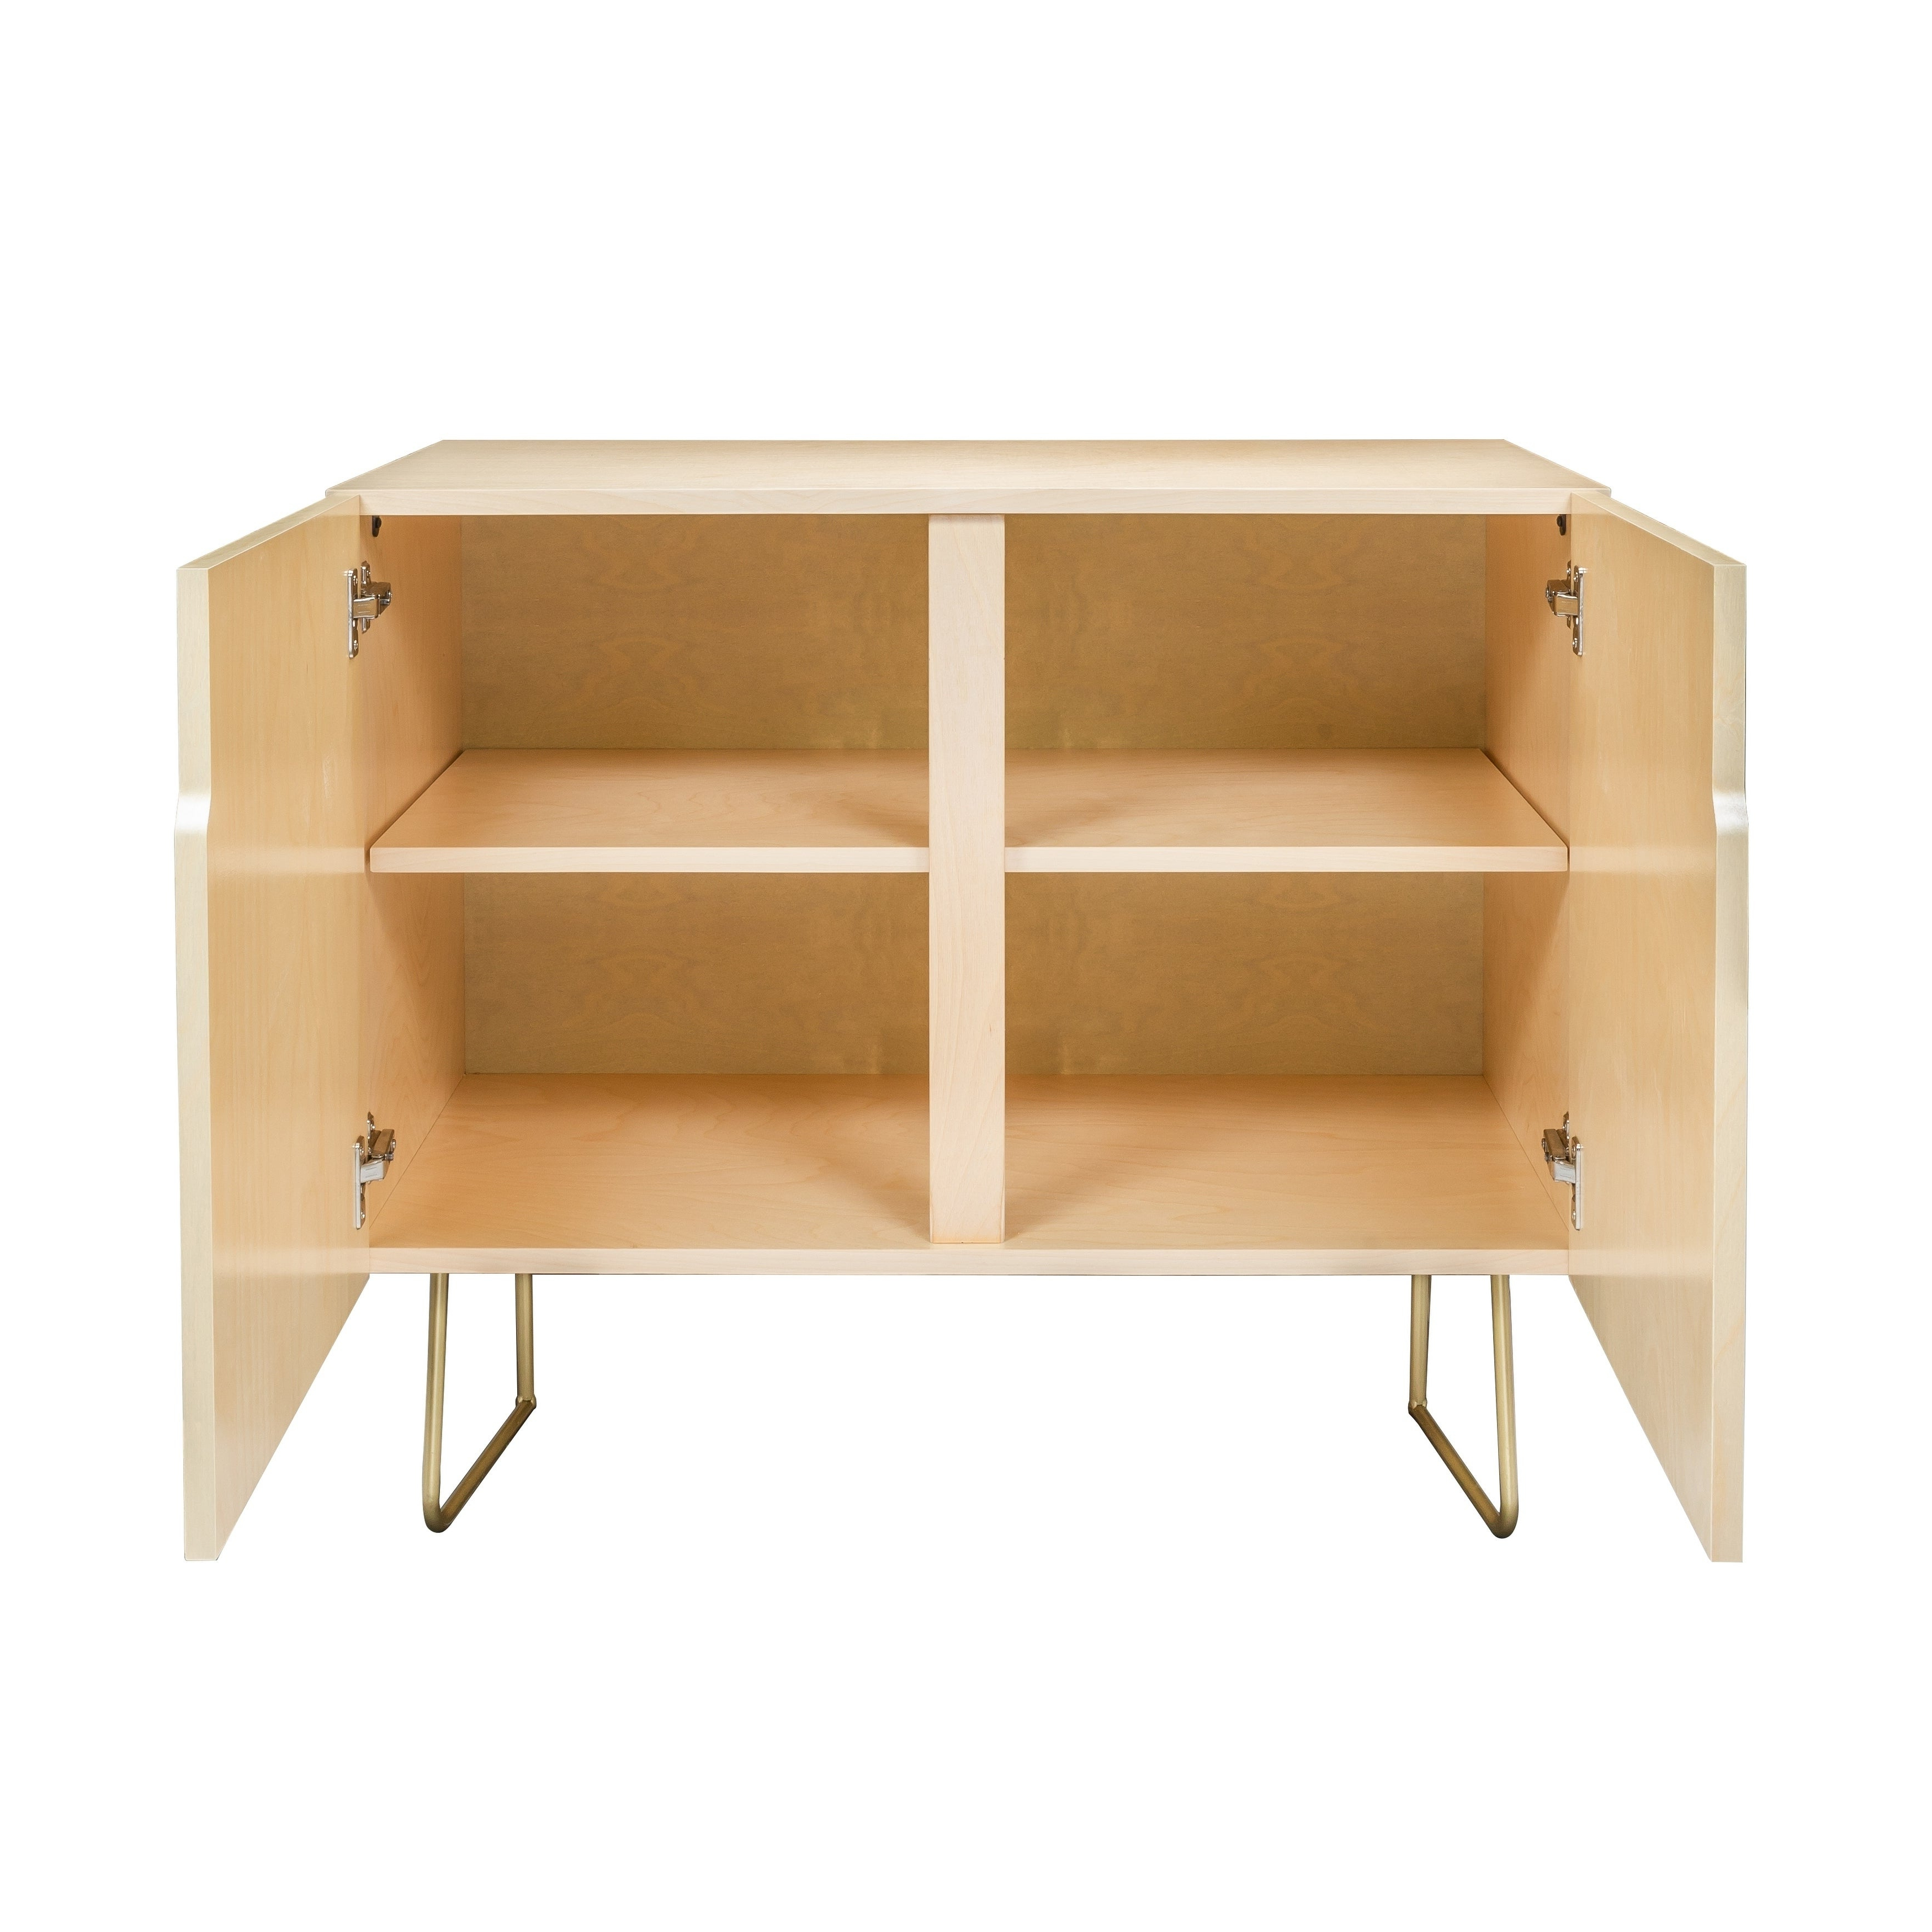 Deny Designs Emerald Cubes Credenza (Birch Or Walnut, 2 Leg Options) Pertaining To Emerald Cubes Credenzas (View 3 of 20)